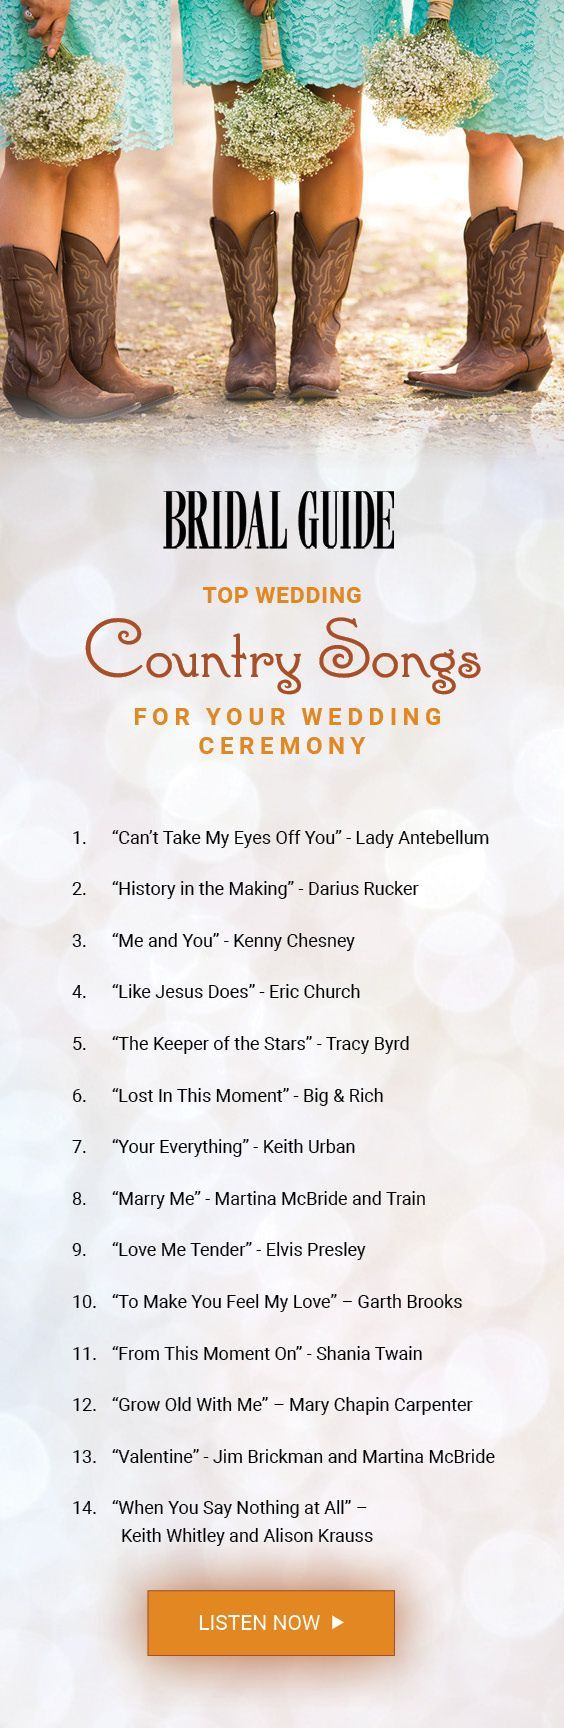 Check Out Our Countdown Of The Top Country Songs To Play During Your Wedding Ceremony